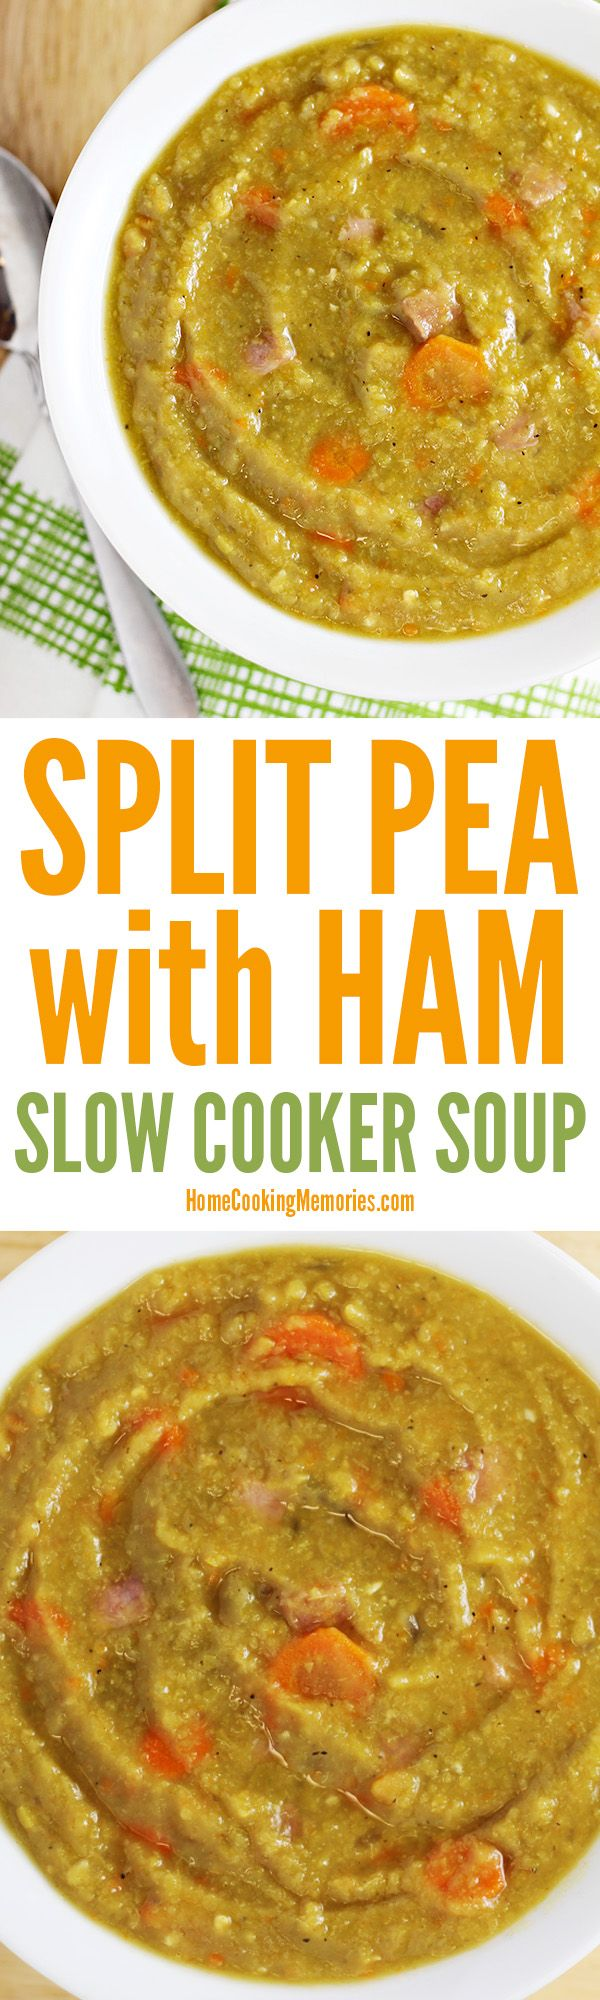 This Slow Cooker Split Pea Soup with Ham recipe is not only easy to make, but filling and perfect for cold weather. Made with dry split peas, ham, onion, and carrots. This Crock-Pot soup is also a great way to use up leftover holiday ham.